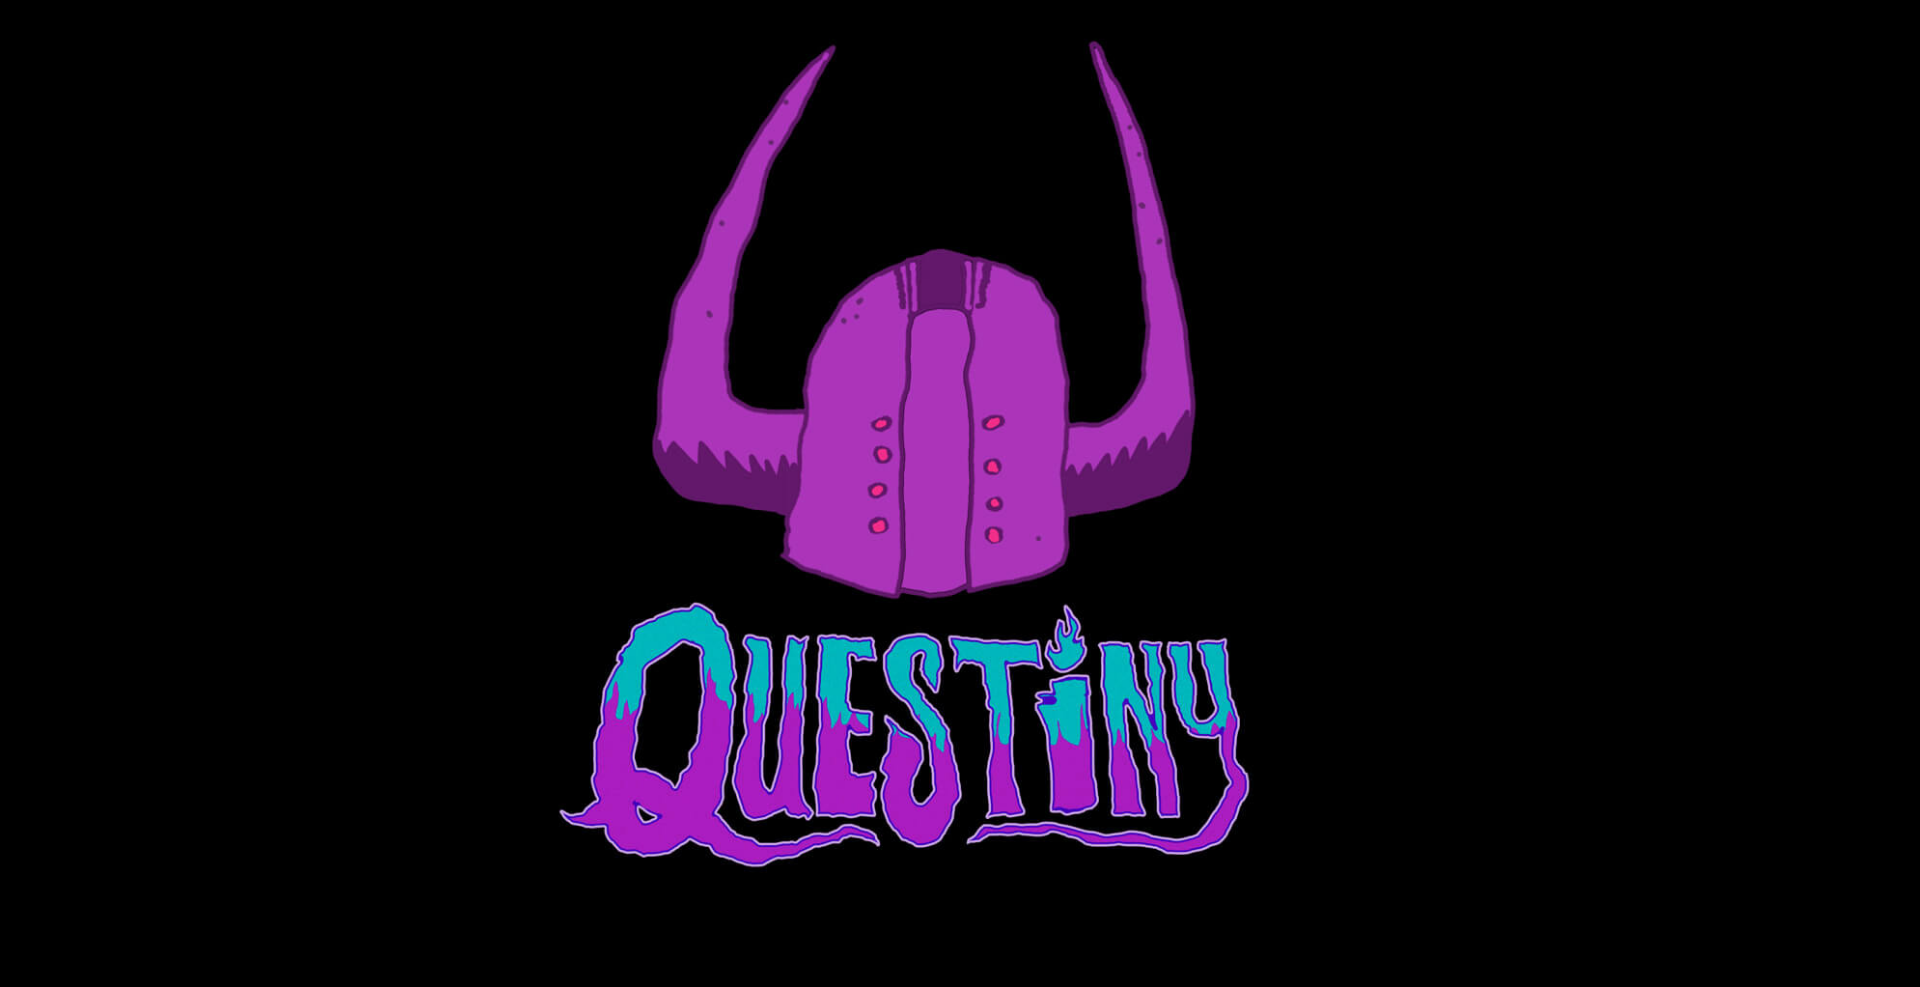 QUESTINY! Online team adventure from the creator of Knightmare Live - BUCKBUCK GAMES